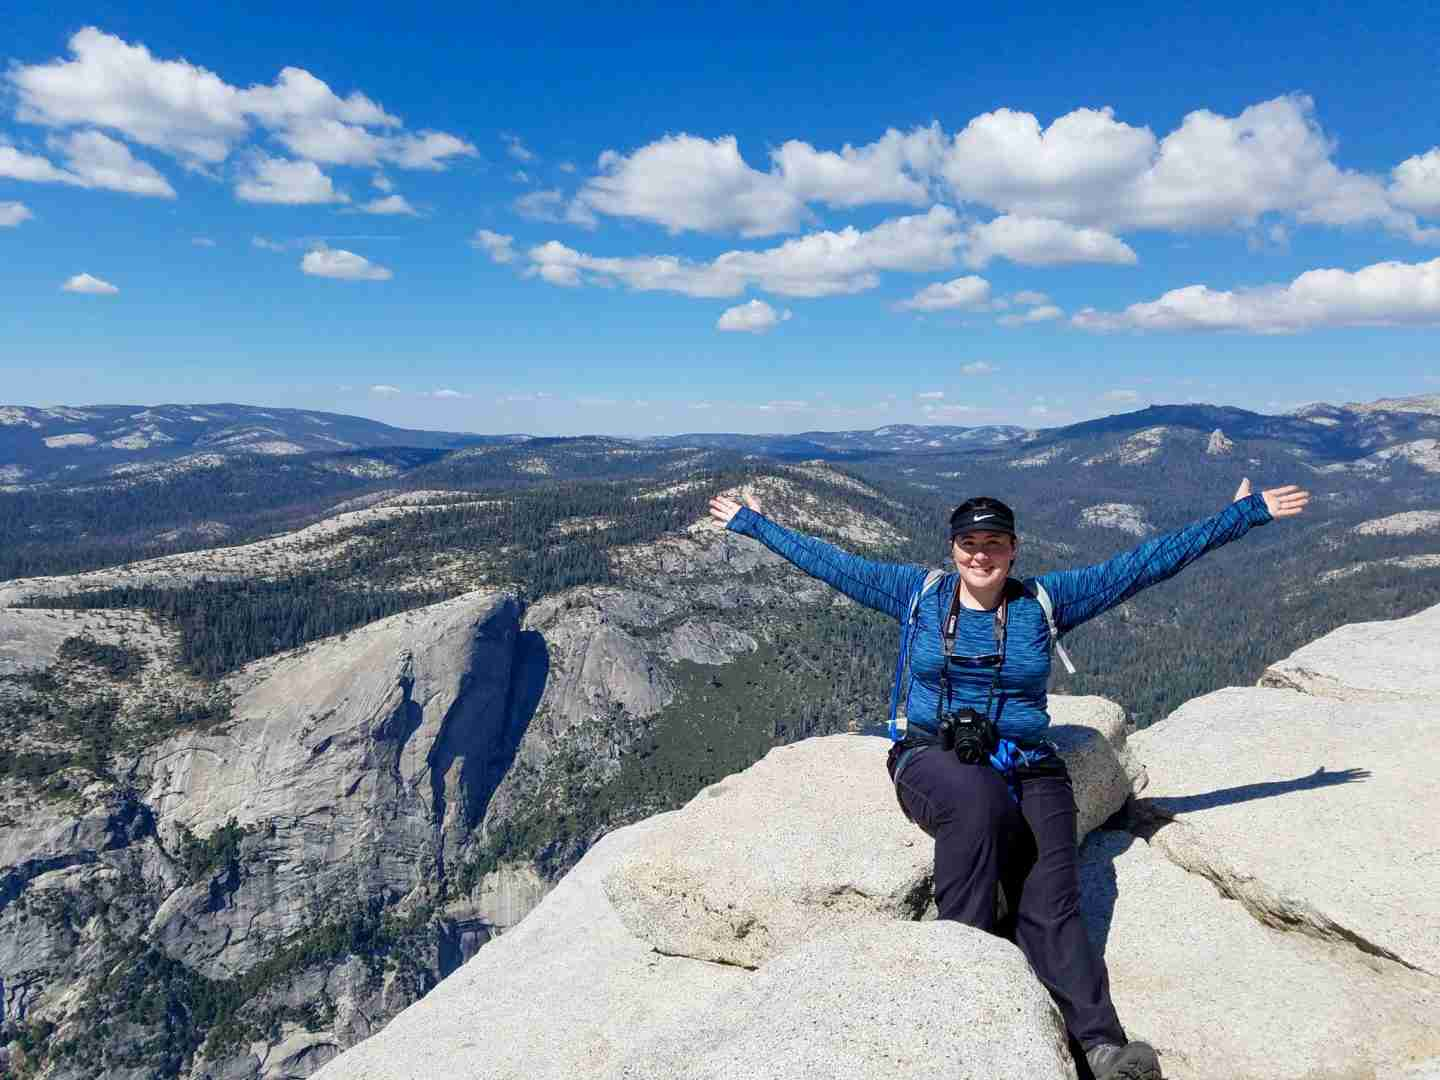 A female hiker in a blue shirt and black pants sits on granite rock with her arms outstretched high above granite rocks of Yosemite Valley.